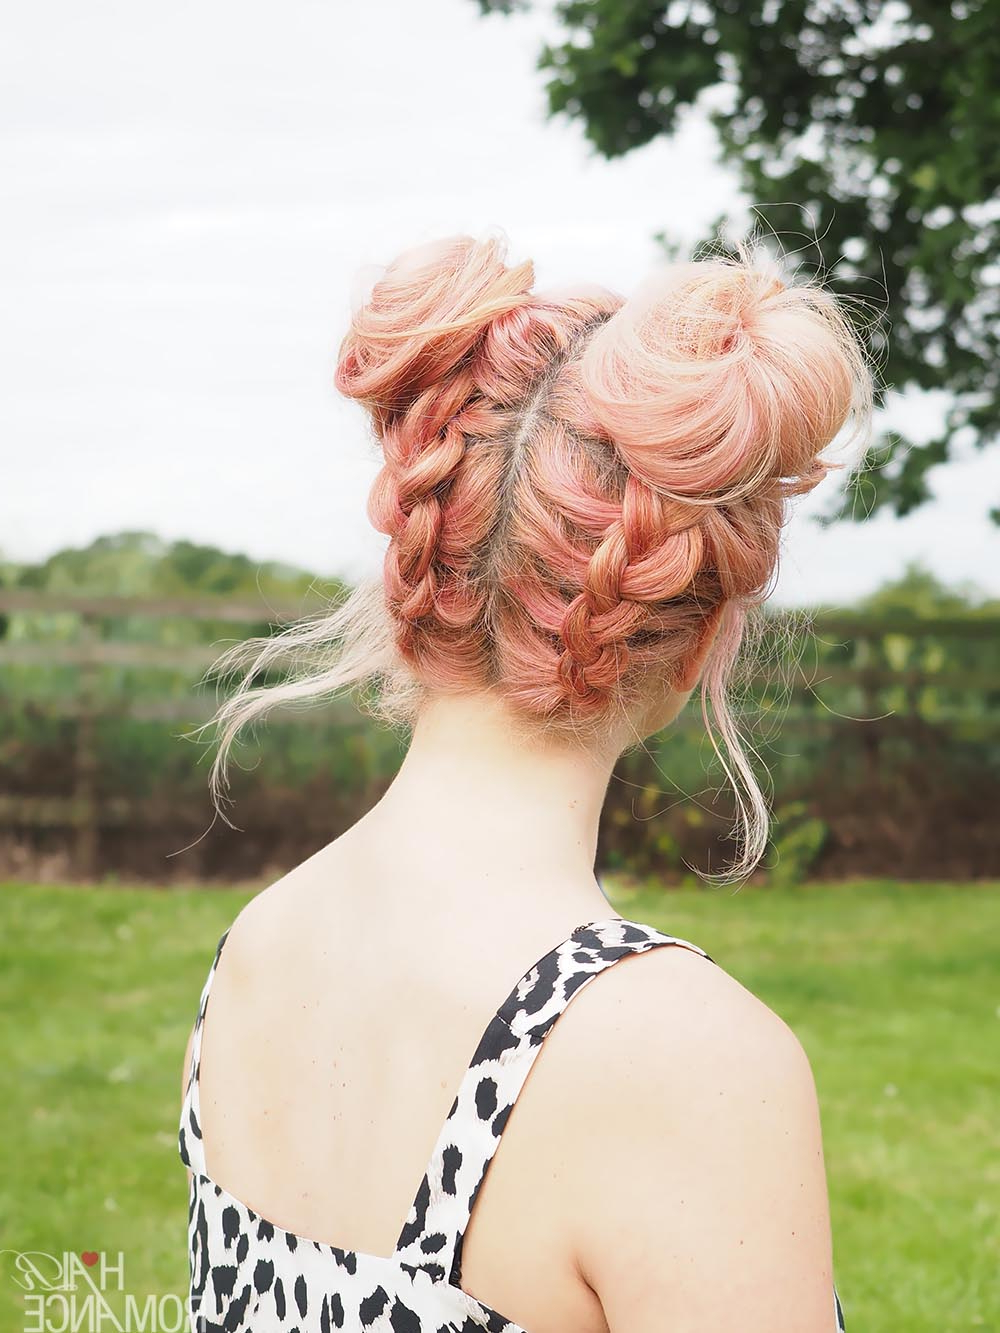 Diy Braided Space Buns Tutorial – Hair Romance For Newest Plaited Chignon Braid Hairstyles (View 15 of 20)